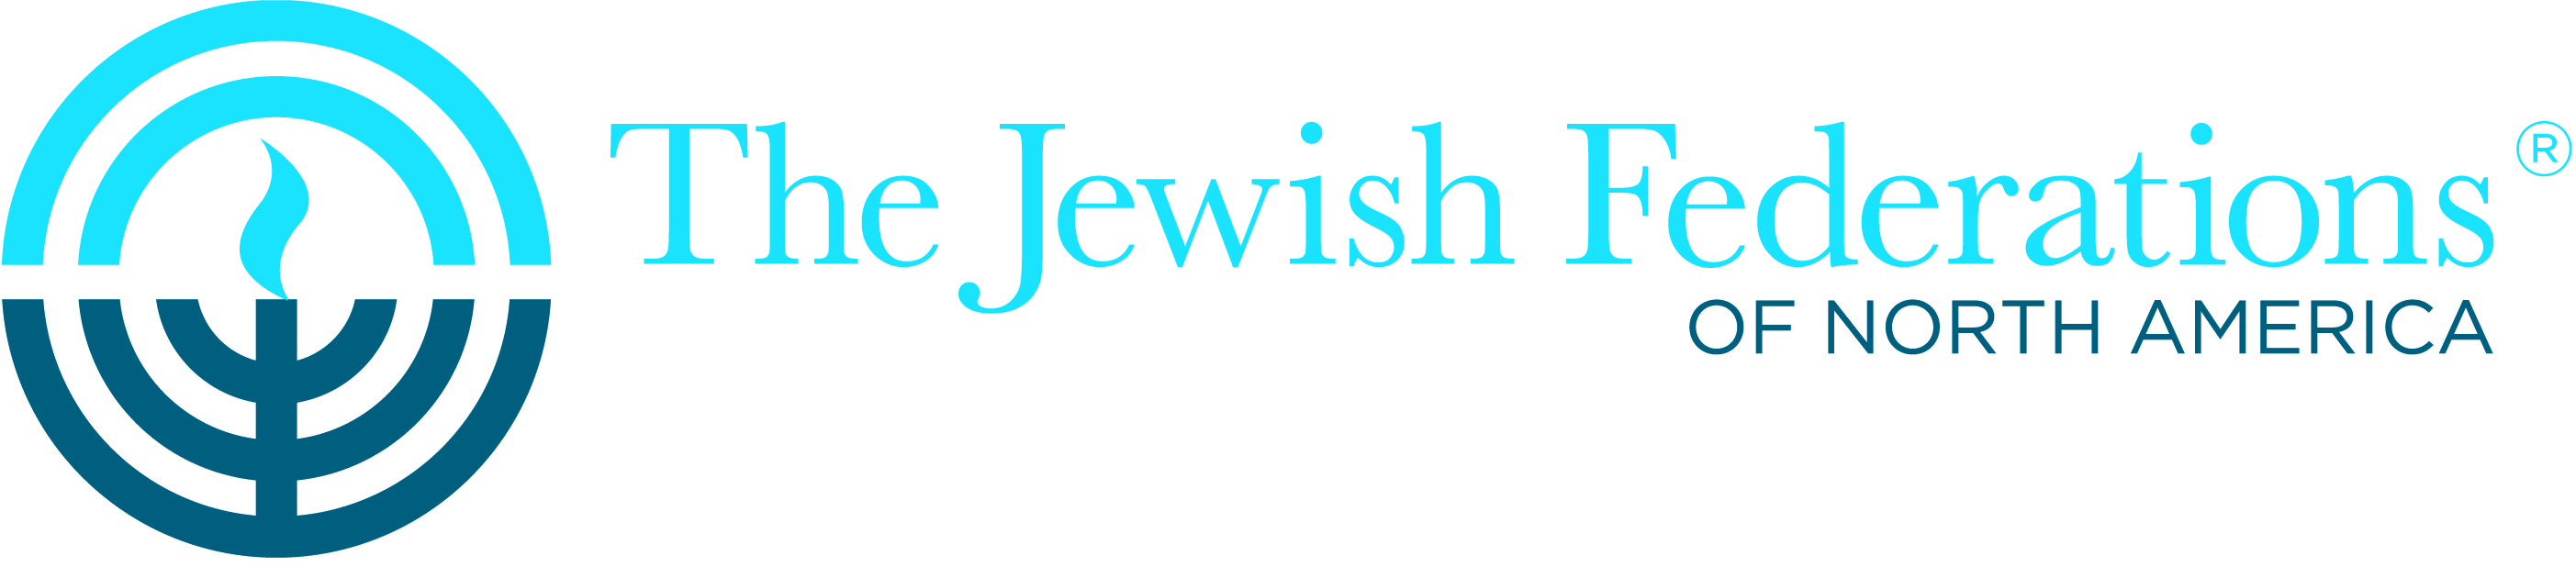 The Jewish Federation of North America